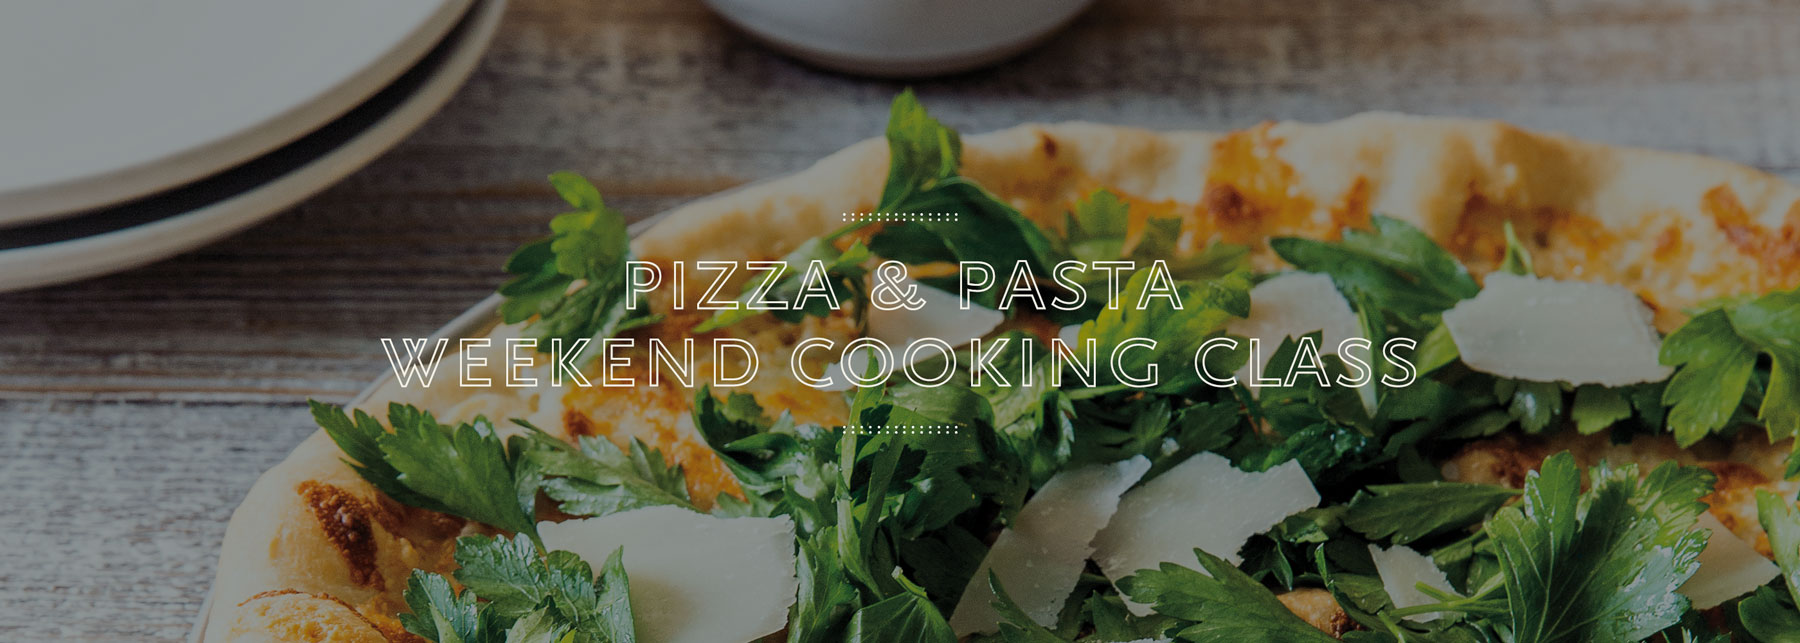 Pizza & Pasta Weekend Cooking Class